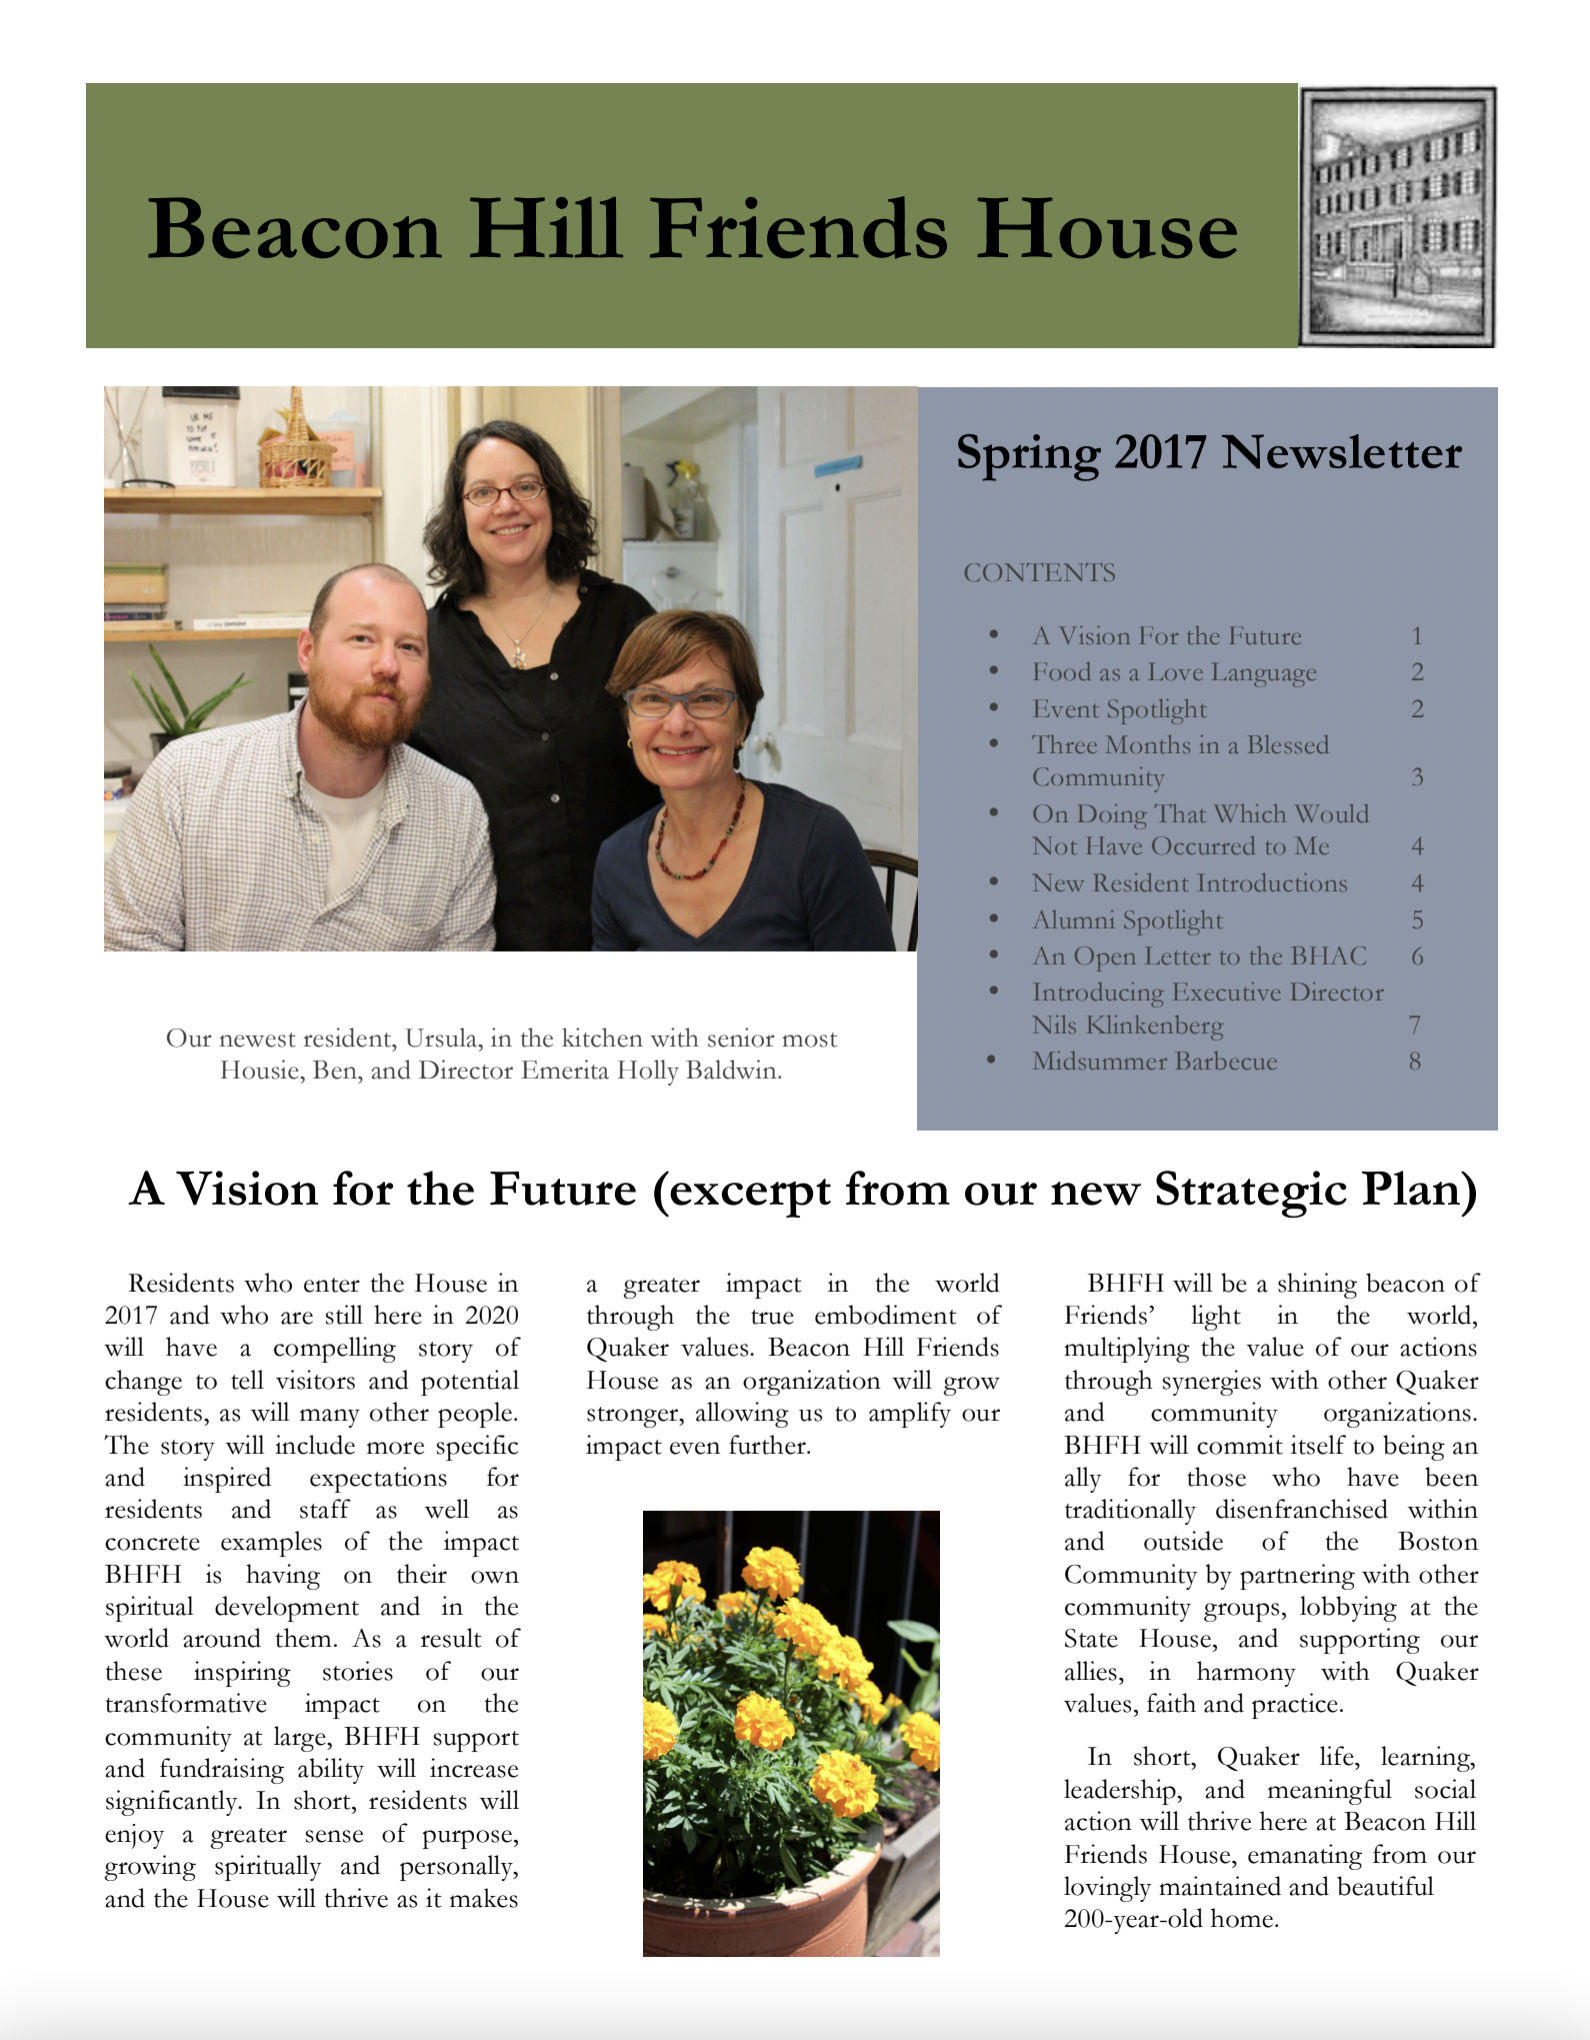 First page of spring/summer 2017 newsletter